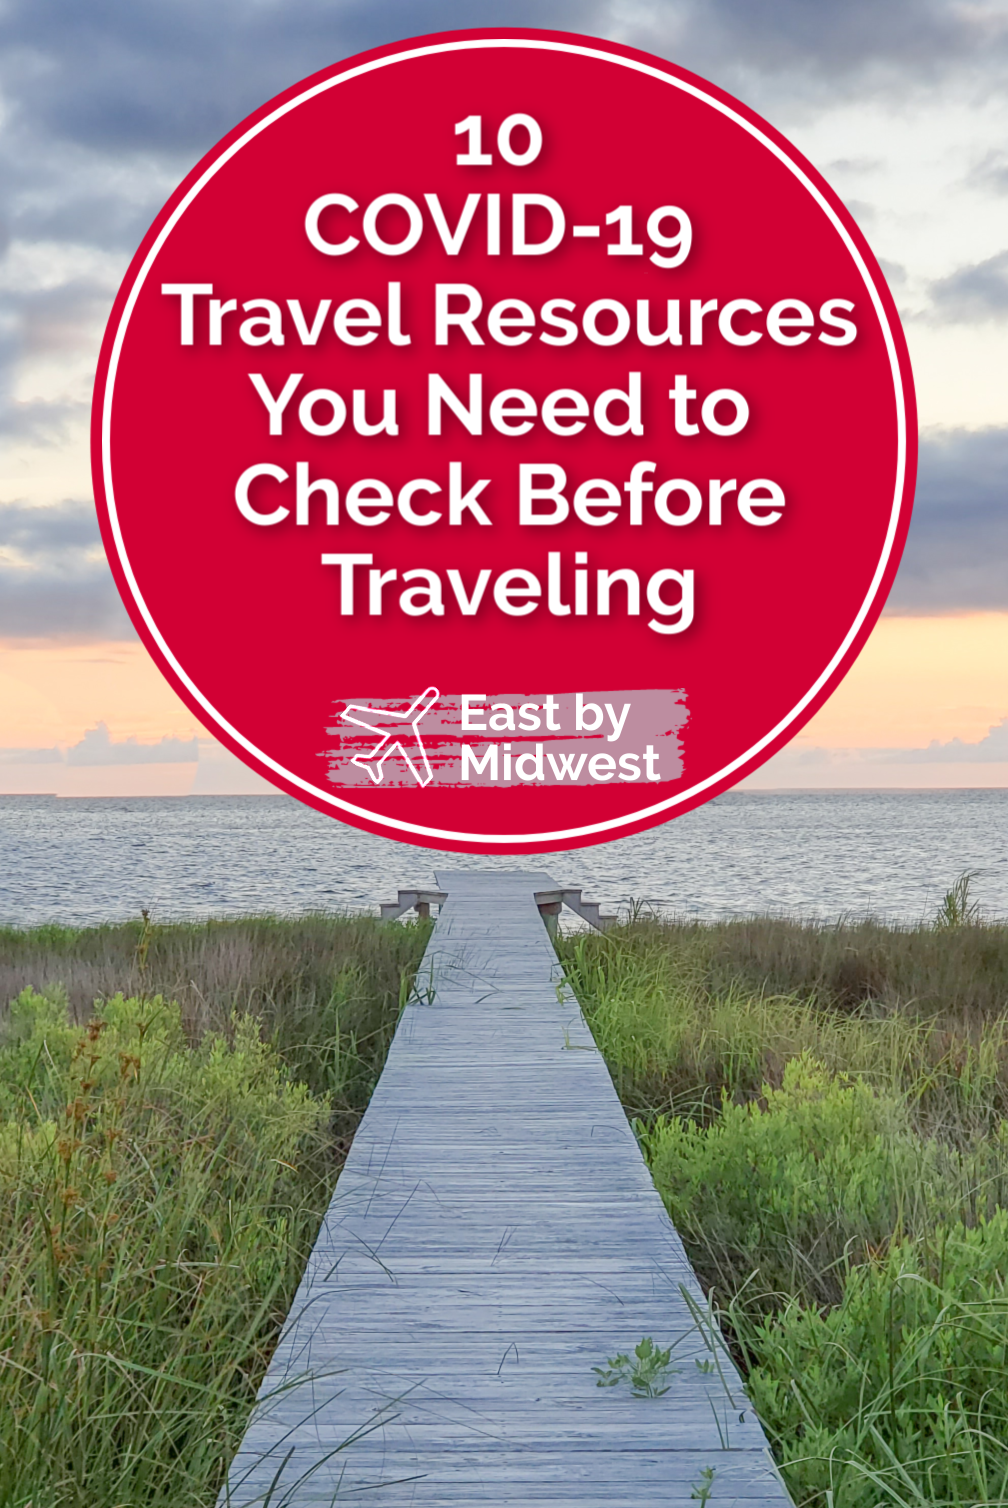 Are you getting ready to travel again? Before you pack your bags, check these great COVID-19 travel resources to help you stay safe and informed. #covid19 #coronavirus #covid19travel #coronavirustravel #covid19travelresources #coronavirustravelresources #roadtrip #travel #wanderlust #bucketlist #travelresources #travelhacks